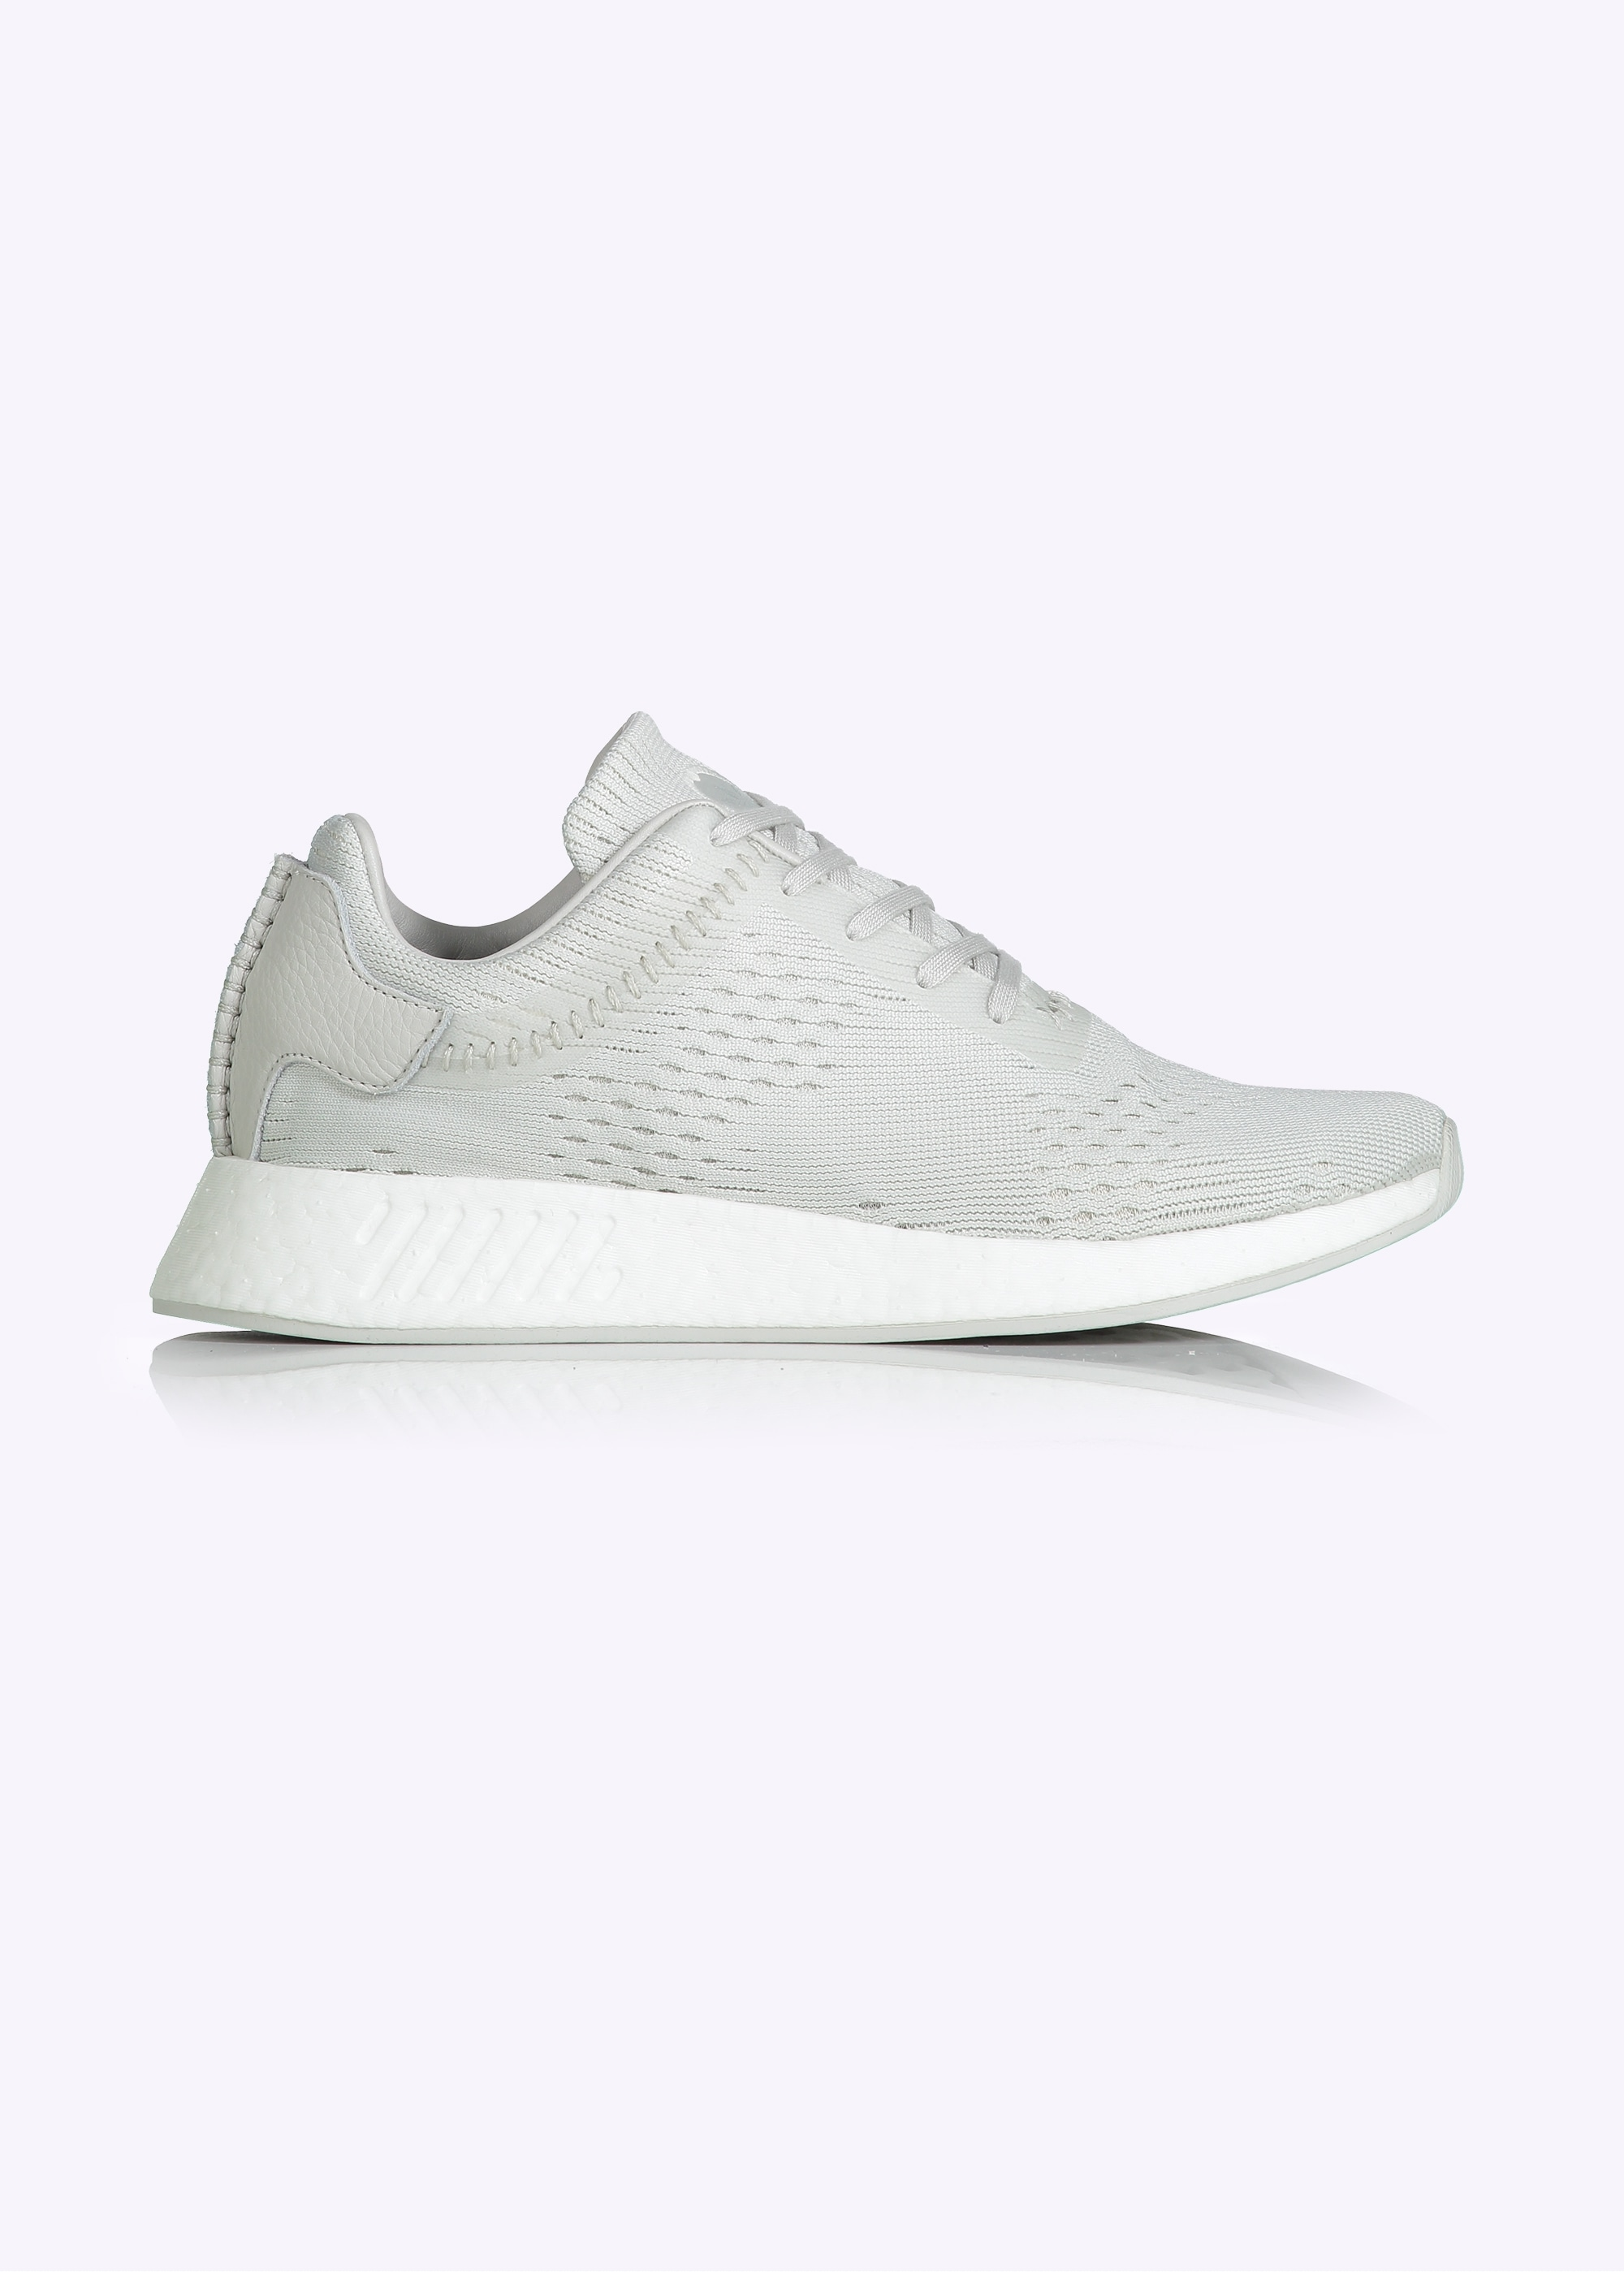 huge discount 59735 d8389 adidas Originals Footwear x wings+horns NMD R2 - Hint Fog